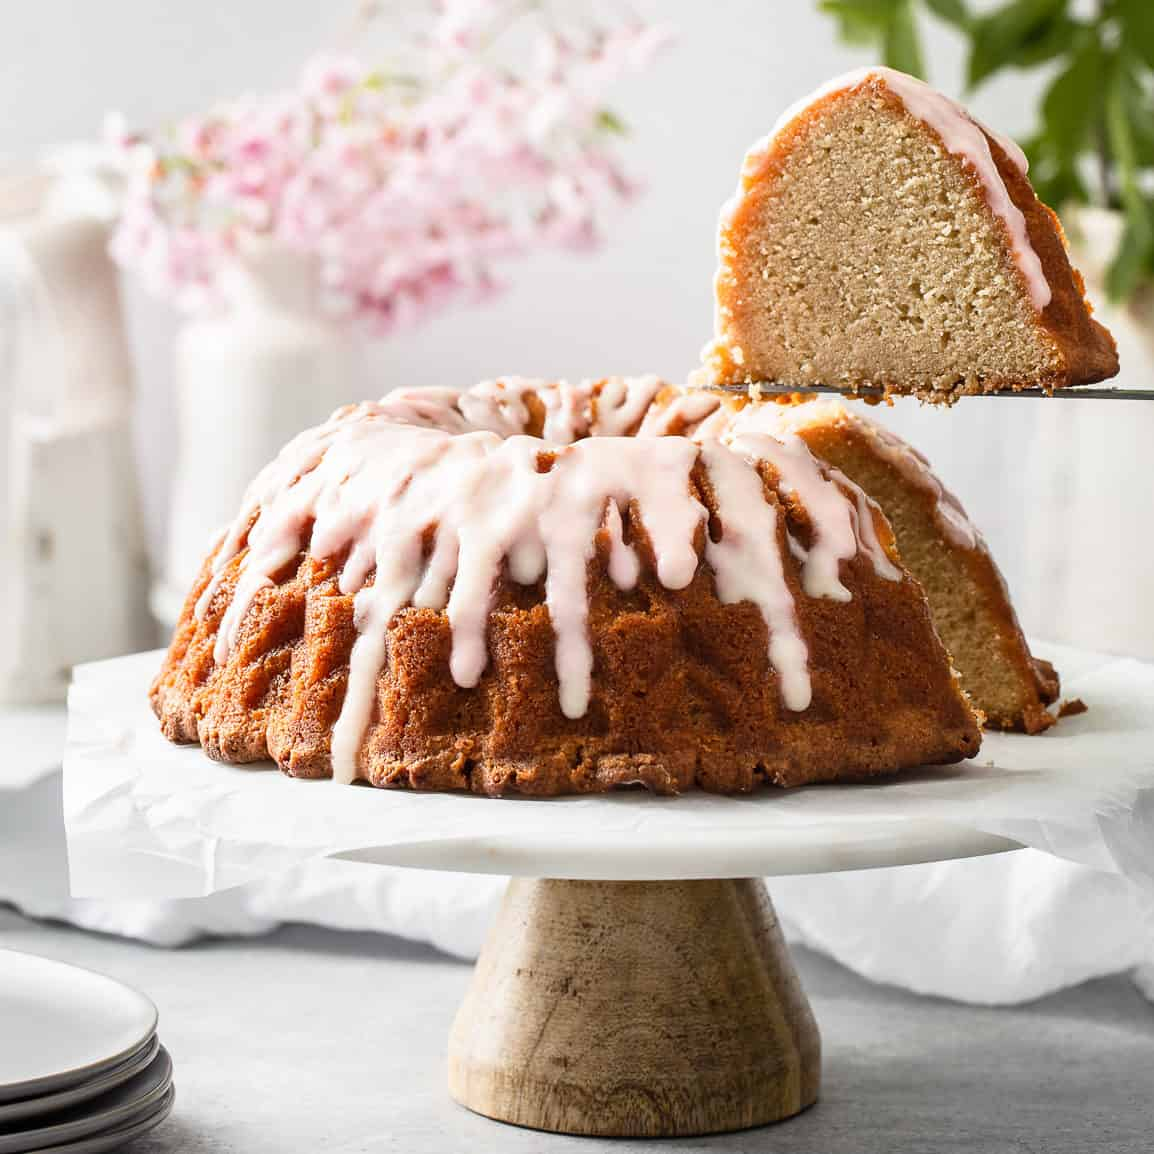 bundt cake with a slice being taken out